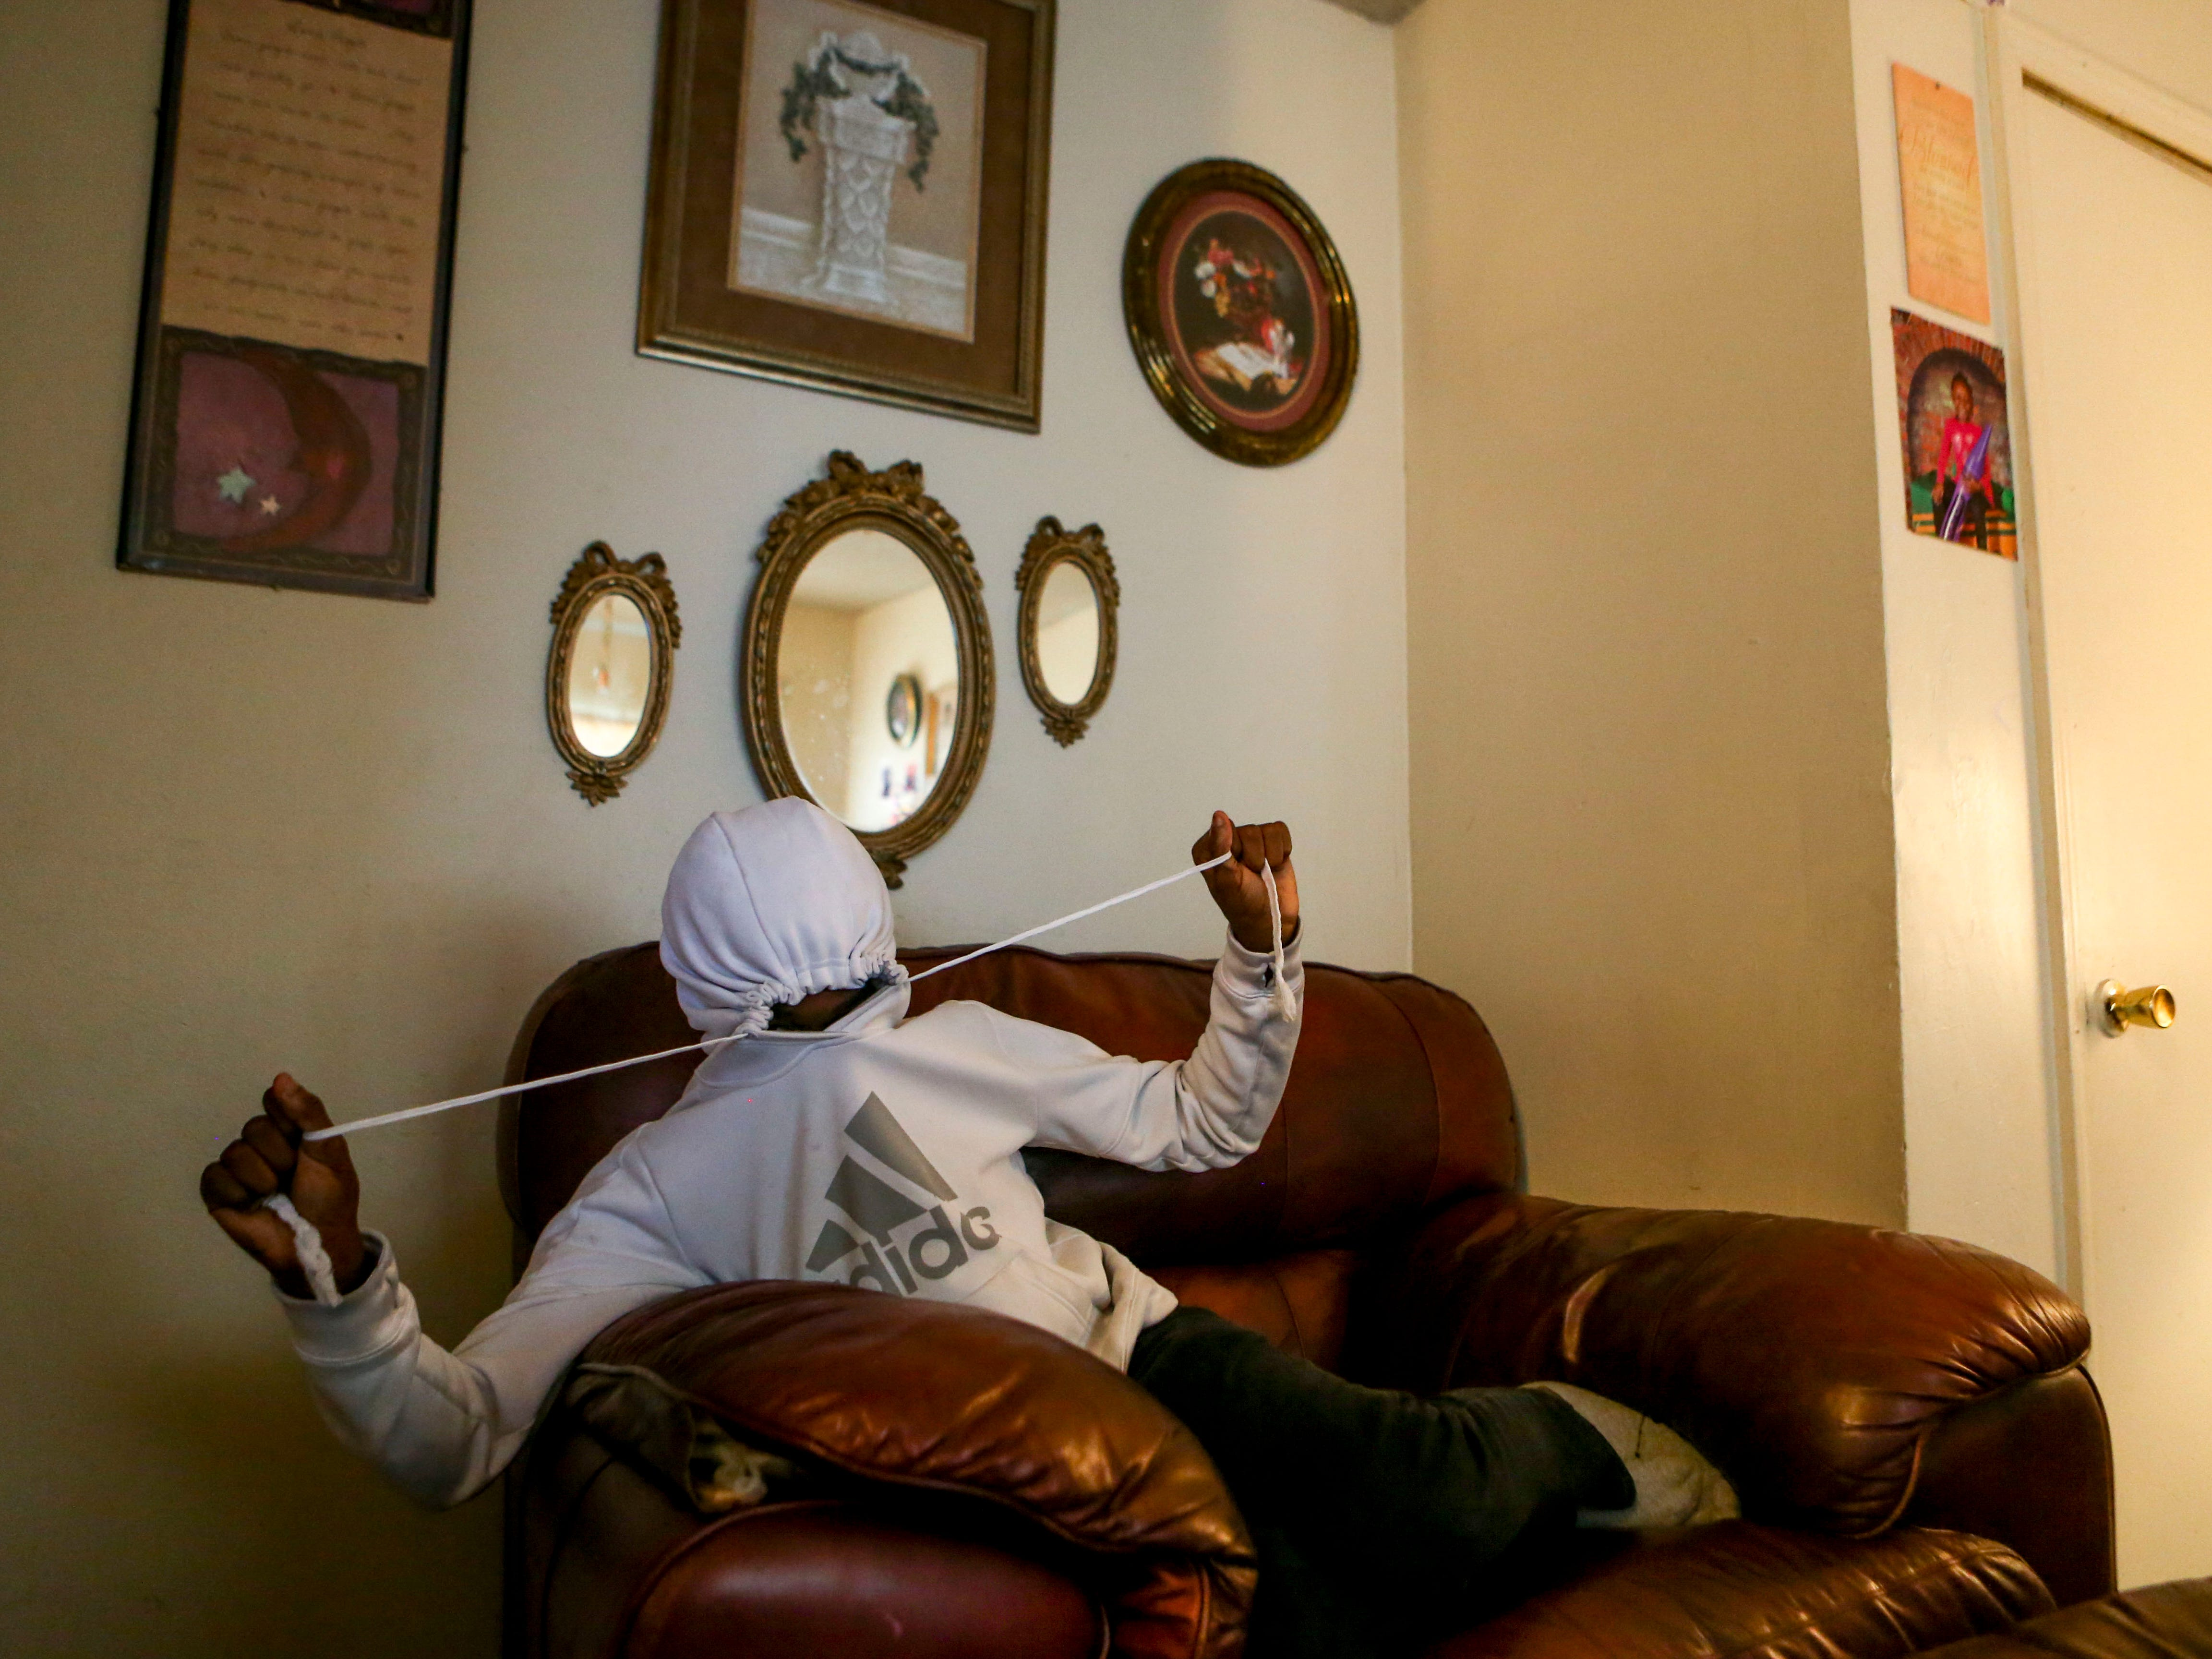 Niarobi McCurry, 11, tightens the string on his hoodie while hanging out on the couch at the McCurry's home in Guardian Courts Apartments in Jackson, Tenn., on Tuesday, Oct. 23, 2018.